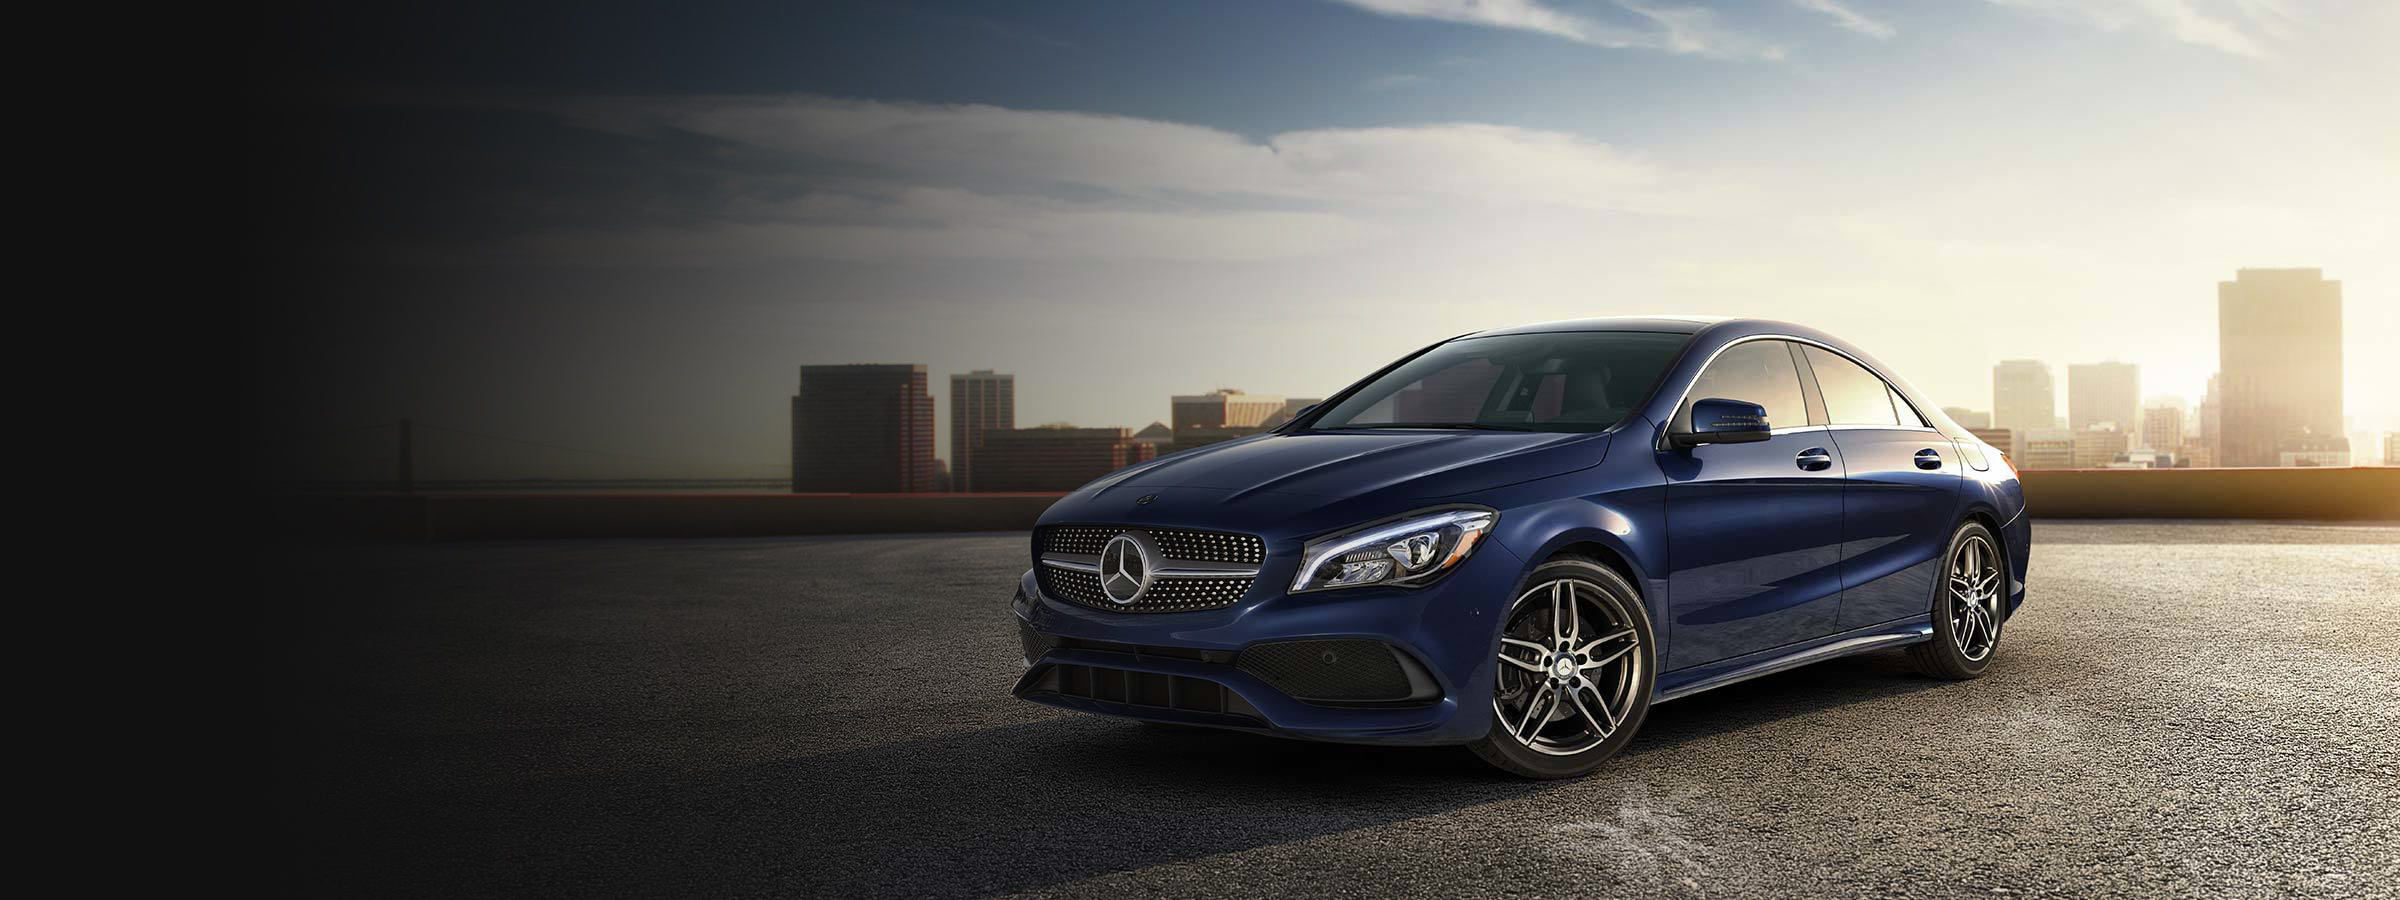 2019 Mercedes-Benz CLA 4-Door Coupe Info, Specs, and Images